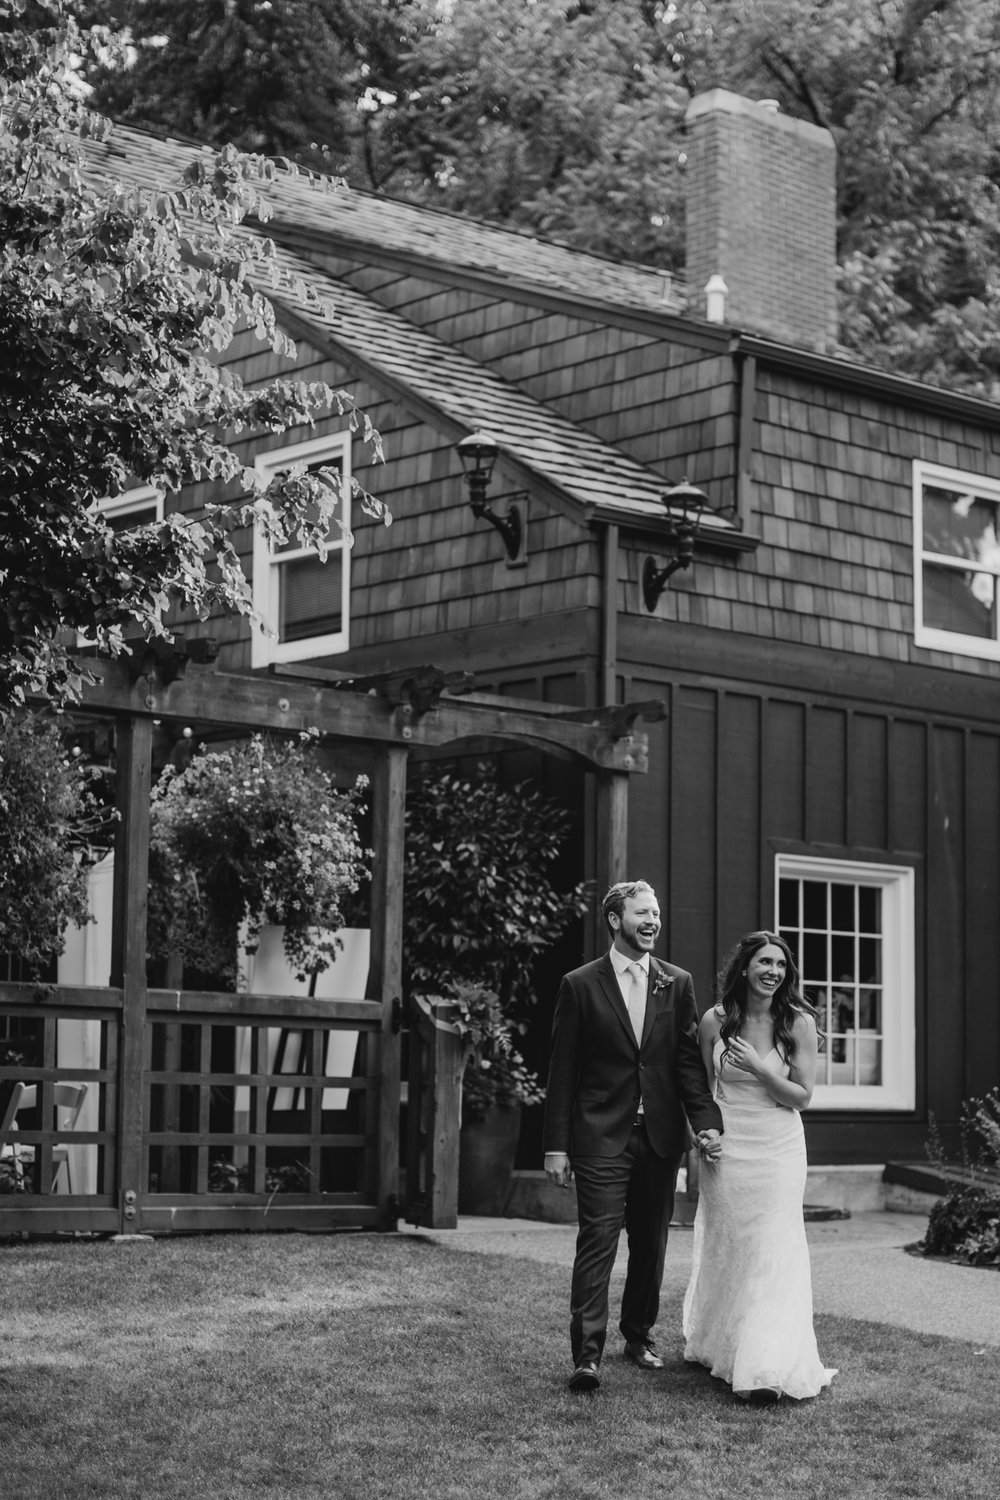 Max&SamPhoto_Seattle Wedding Photographer_Bellevue Robinswood House_013.jpg